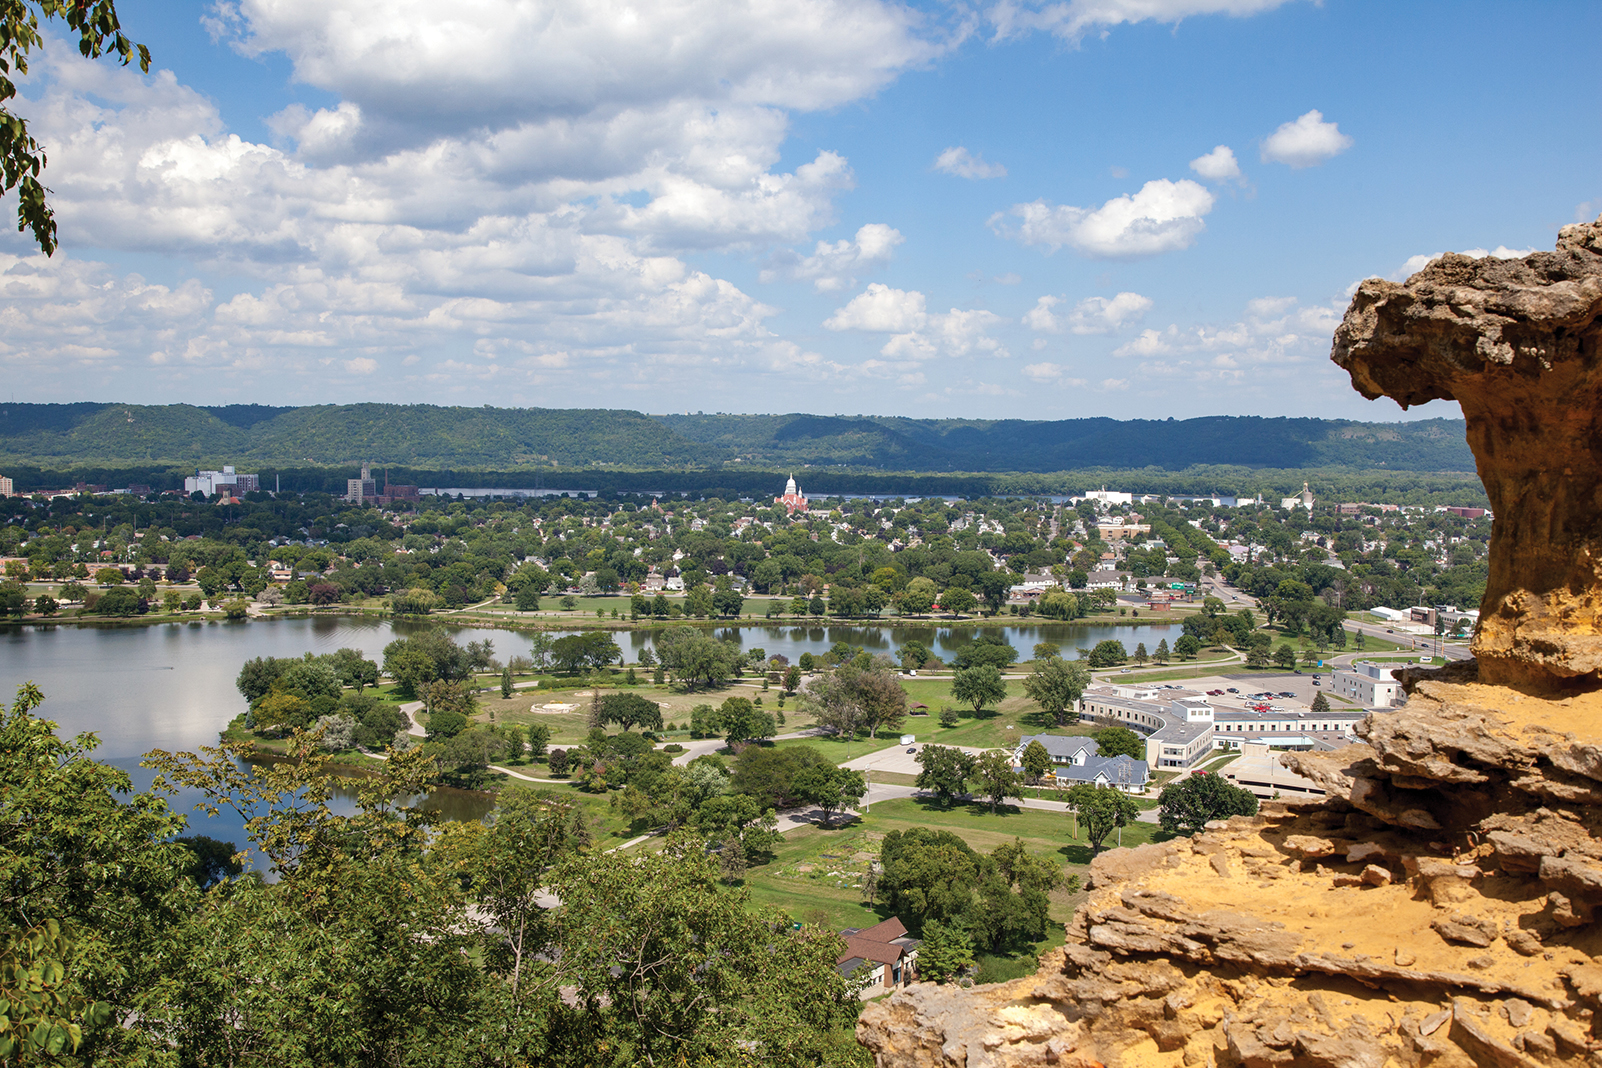 Looking over Winona from Sugar Loaf Bluff